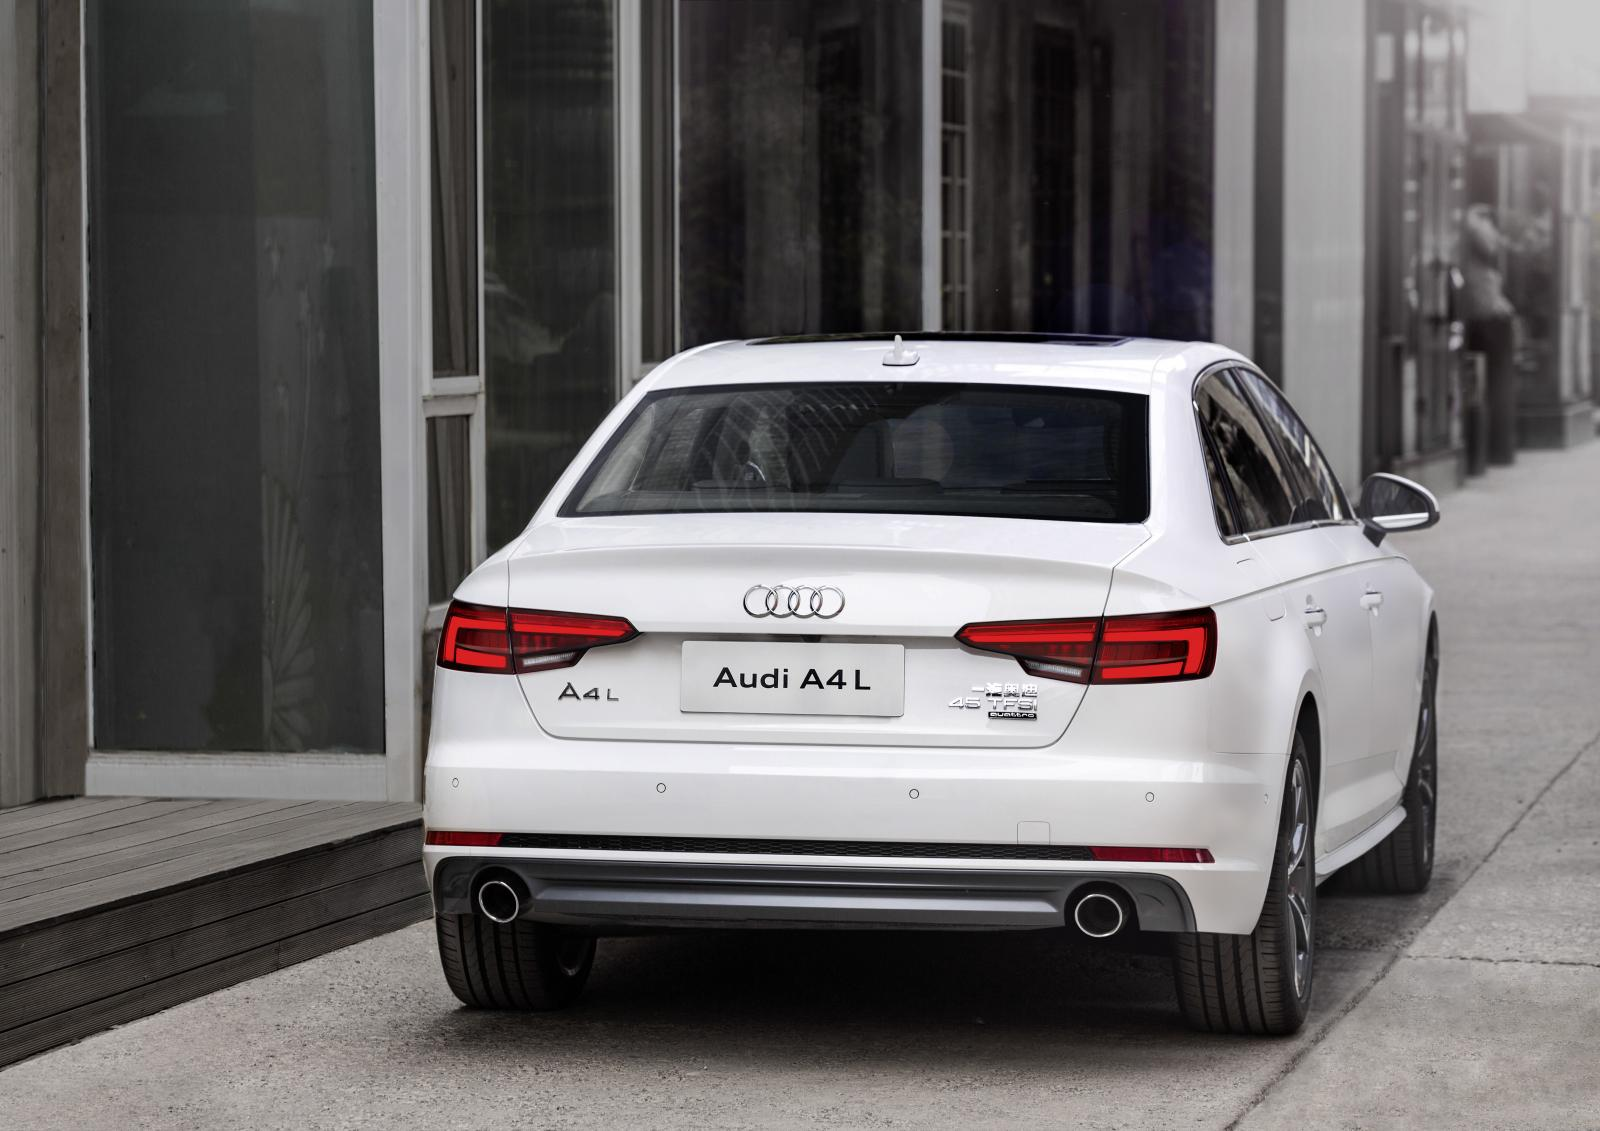 all new audi a4 l debuts in china is offered with 2 0 turbo engines autoevolution. Black Bedroom Furniture Sets. Home Design Ideas